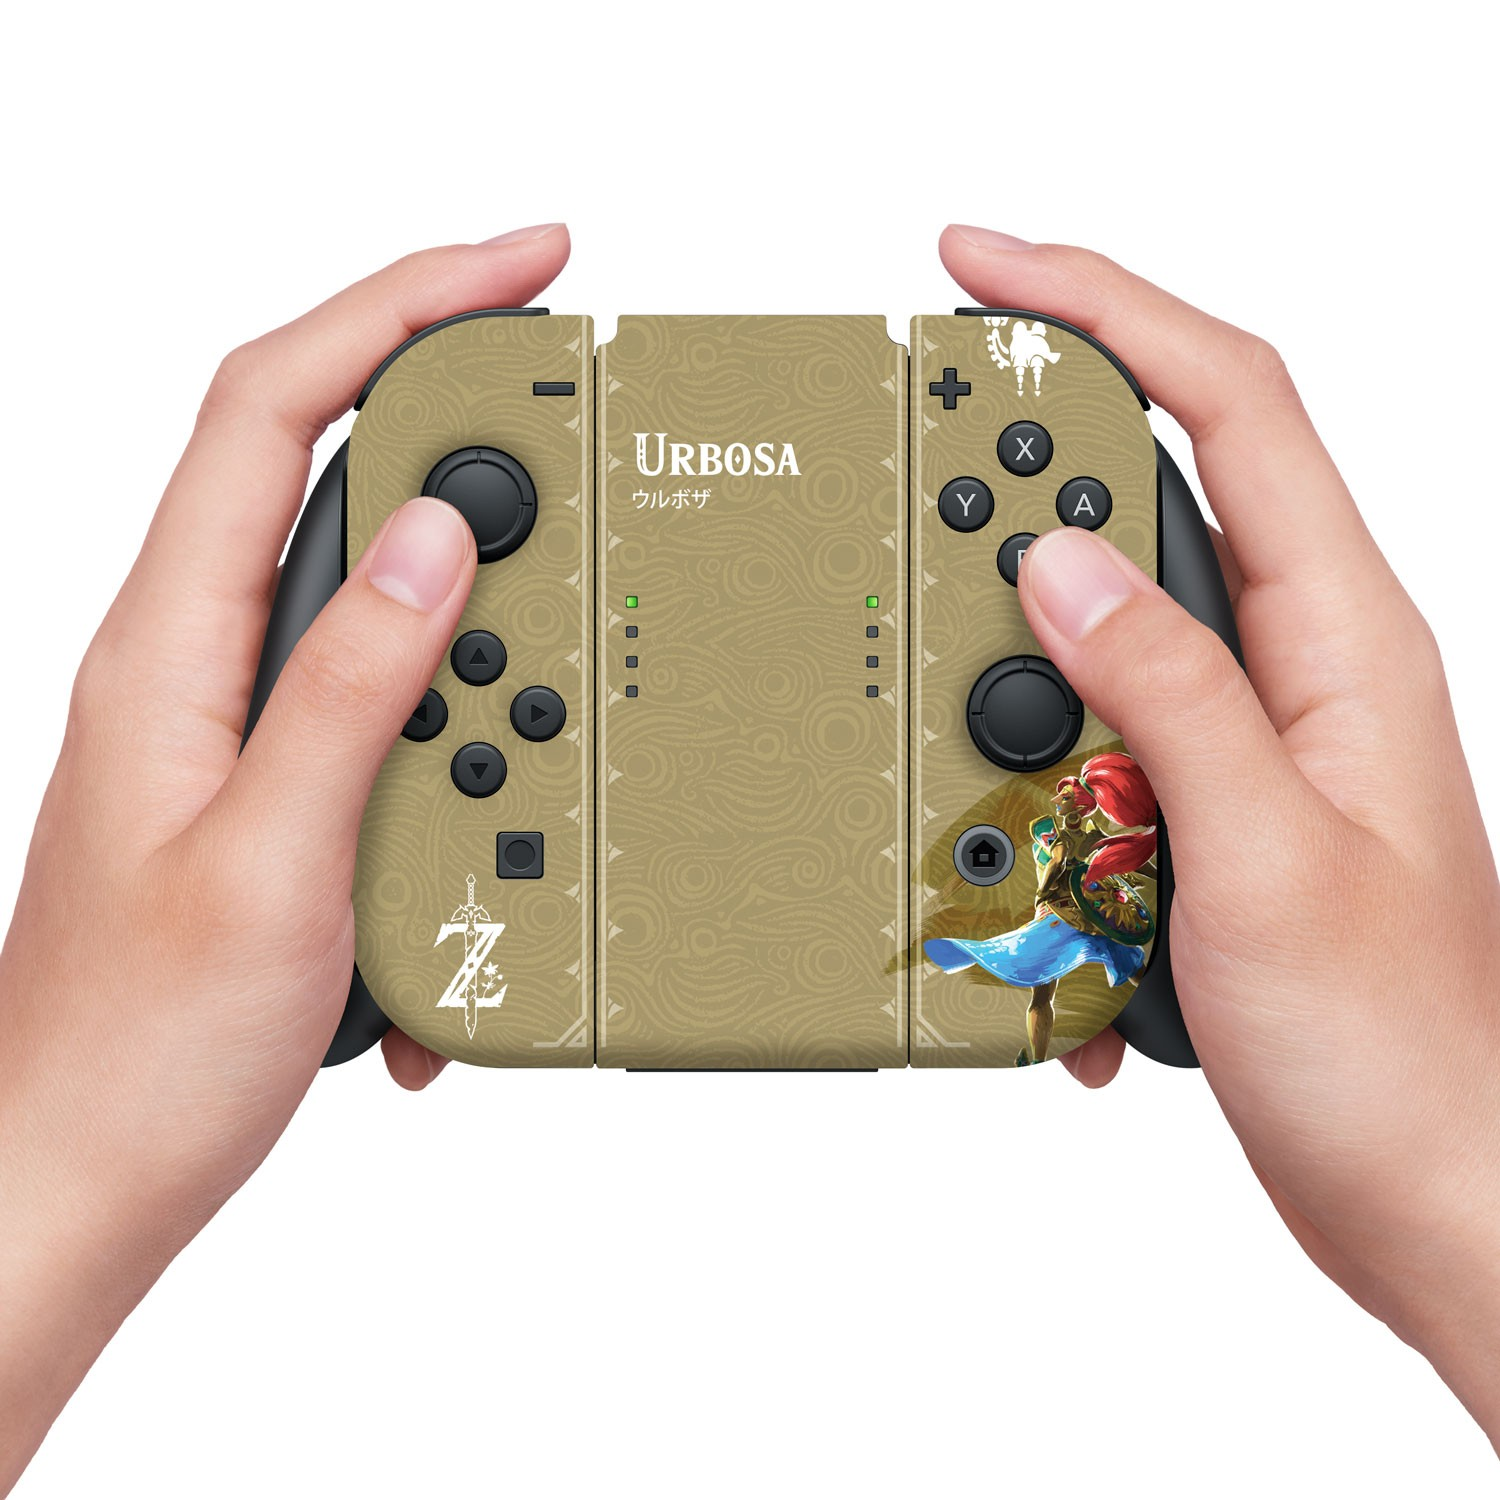 Nintendo Switch Skin & Skin Protector Set Officially Licensed by Nintendo - The Legend of Zelda: Breath of the Wild: Gold Urbosa